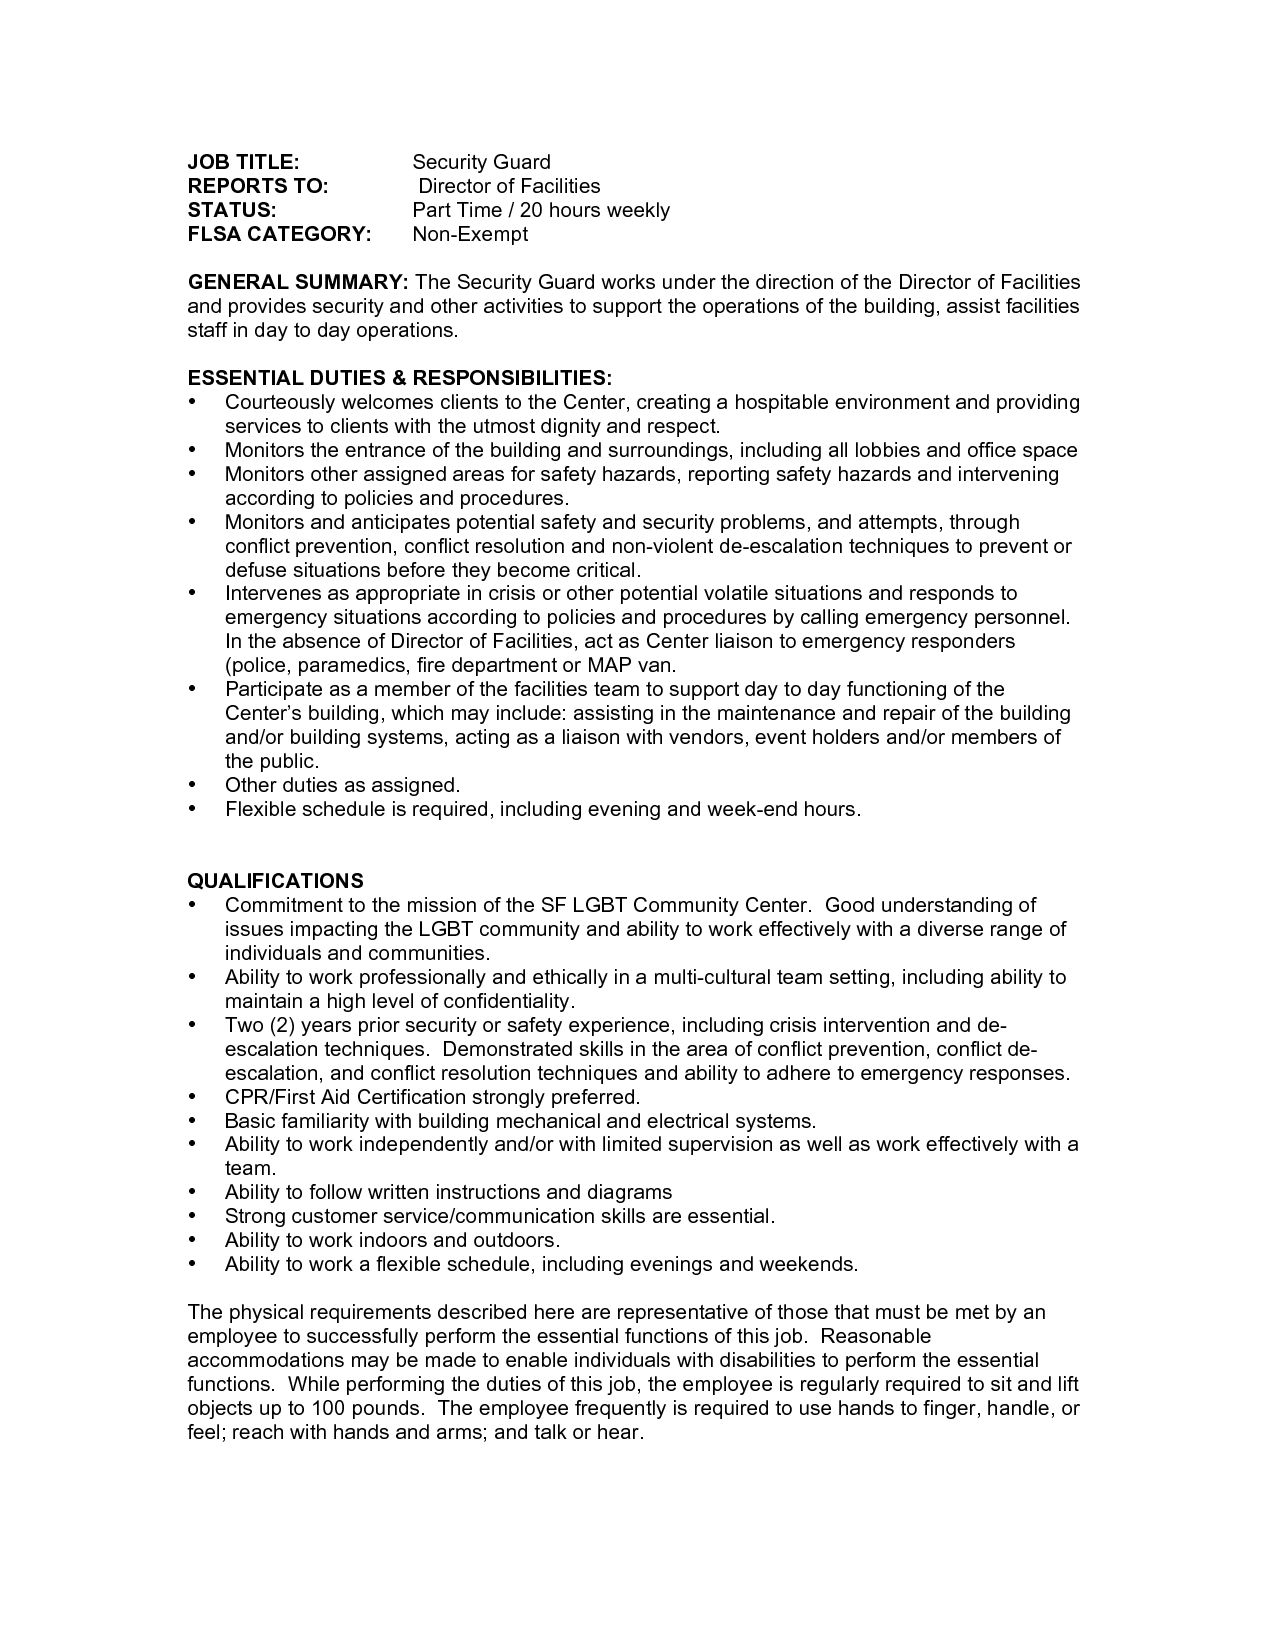 raytheon security officer cover letter inpatient pharmacy